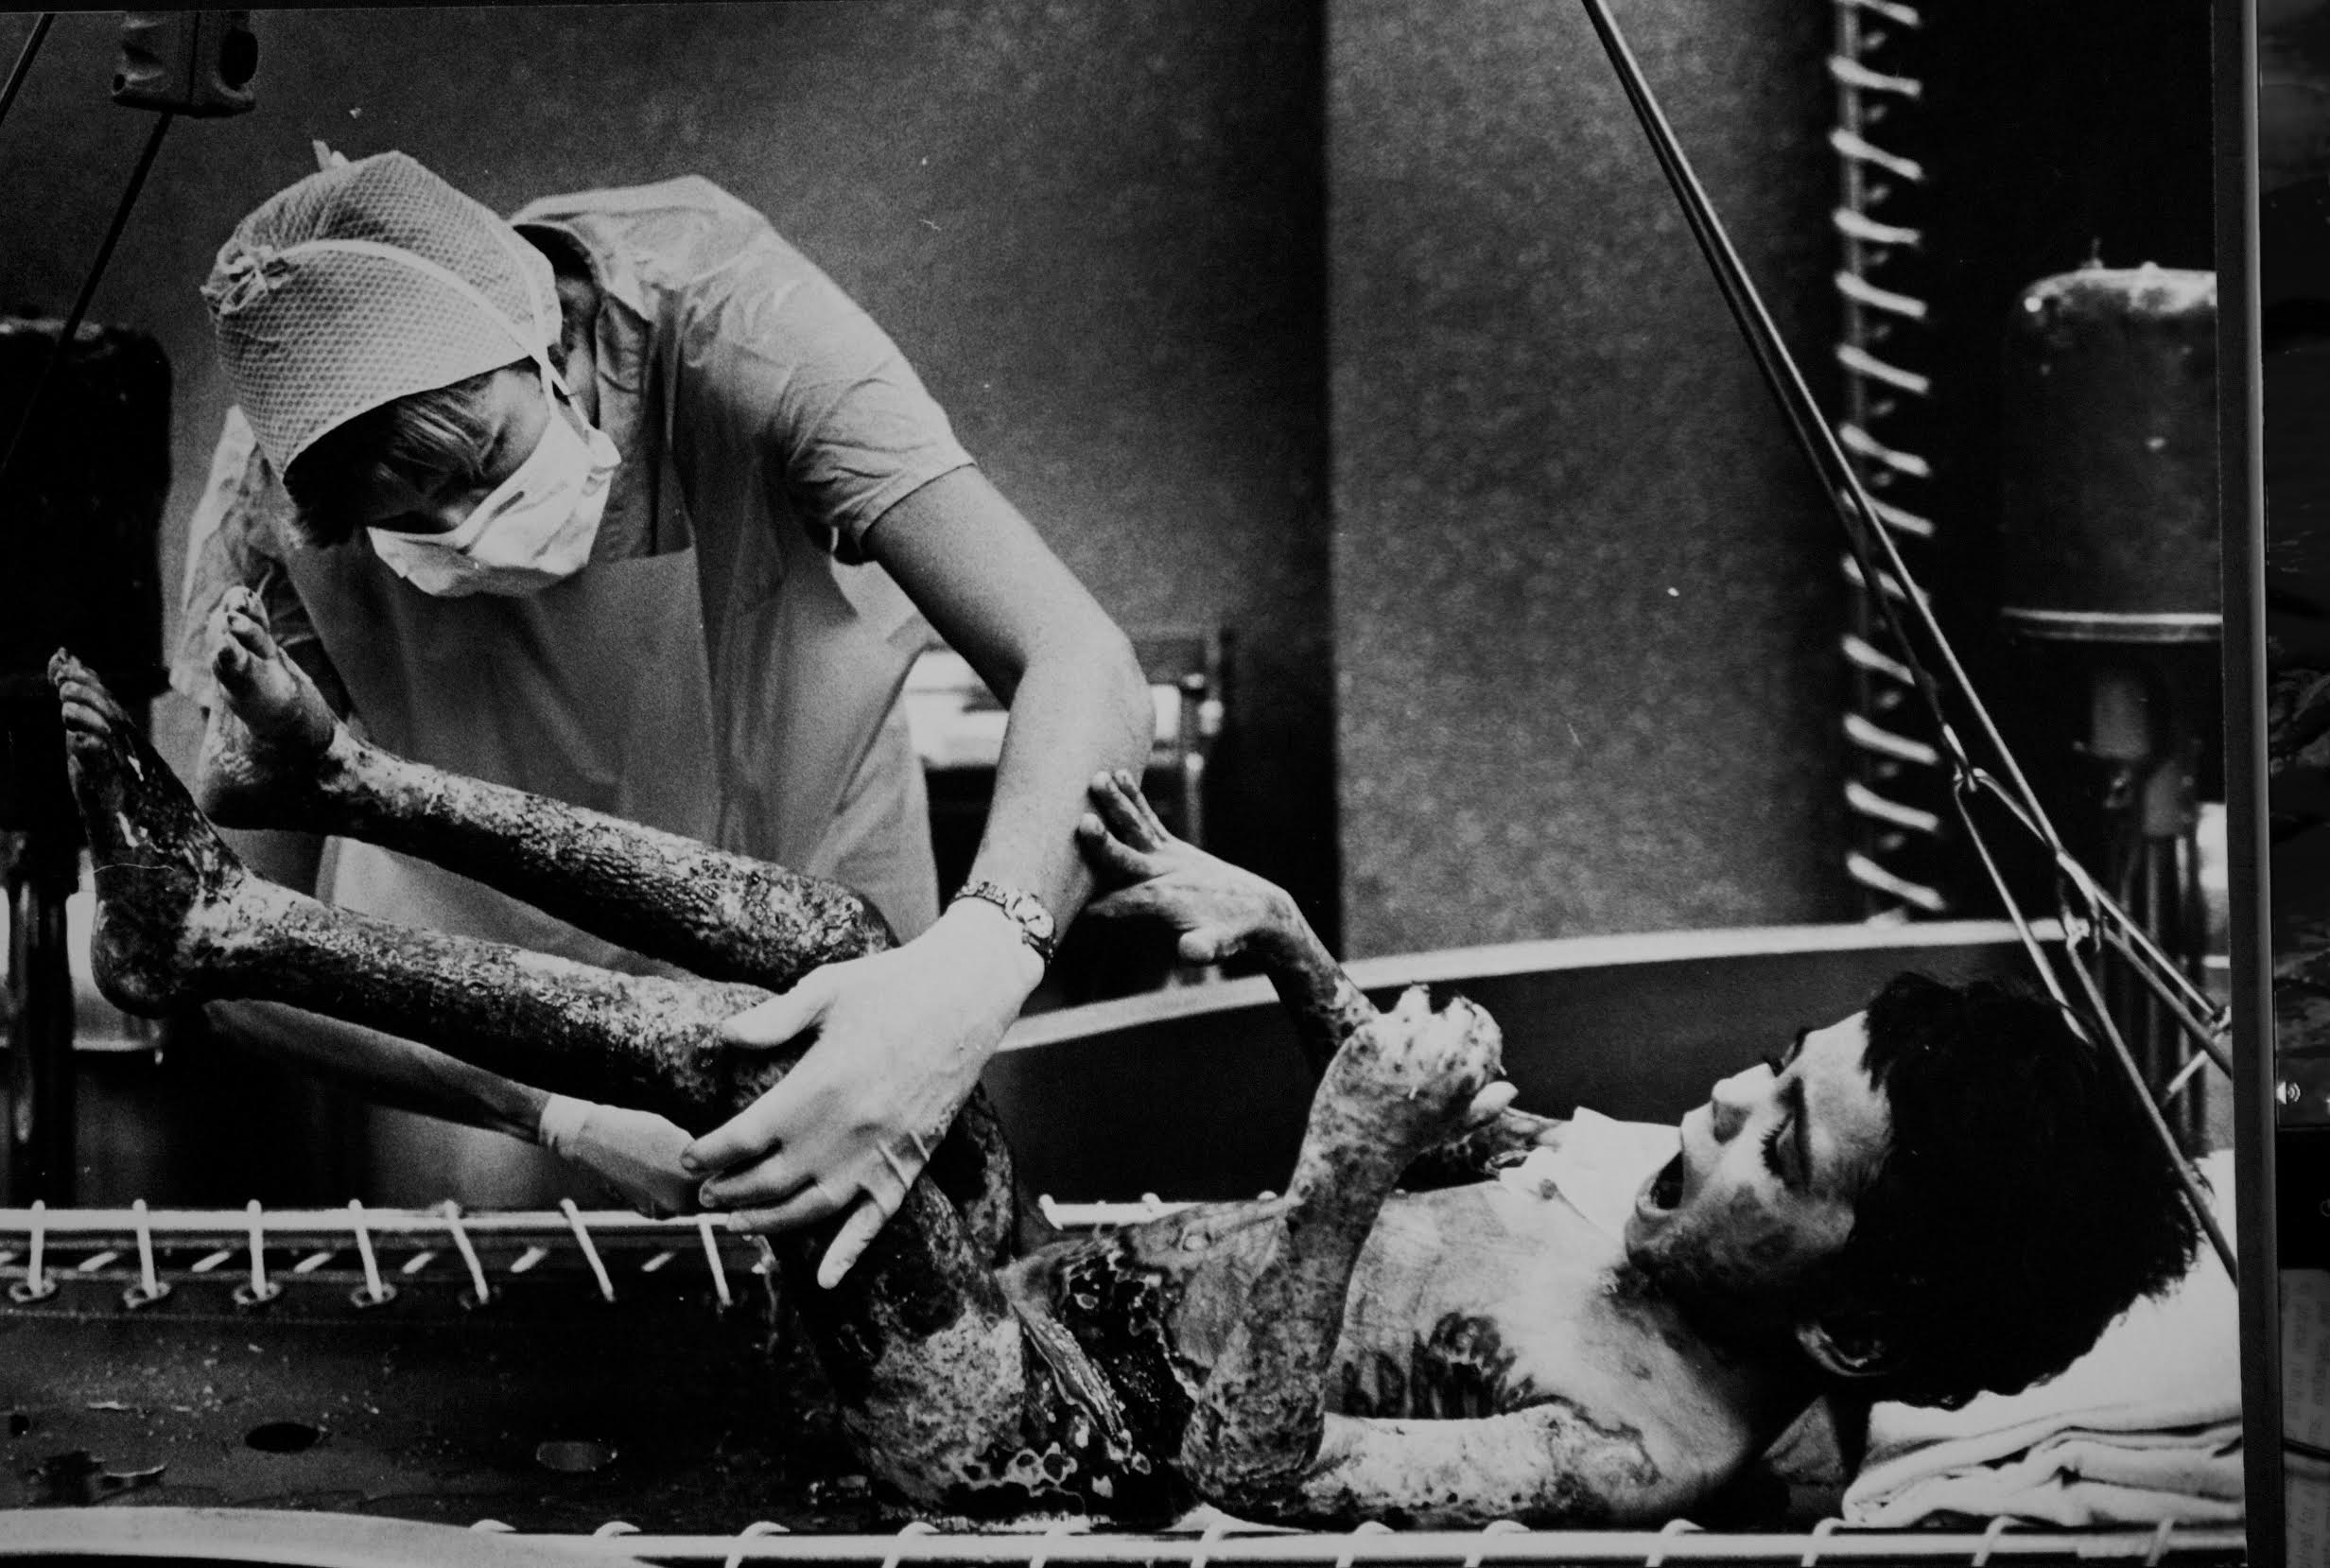 Child severely burned during Hoboken arson fires in the early 1980s. Here he is going through a daily cleaning of dead tissue at a burn center. Photograph by Bill Bayer.